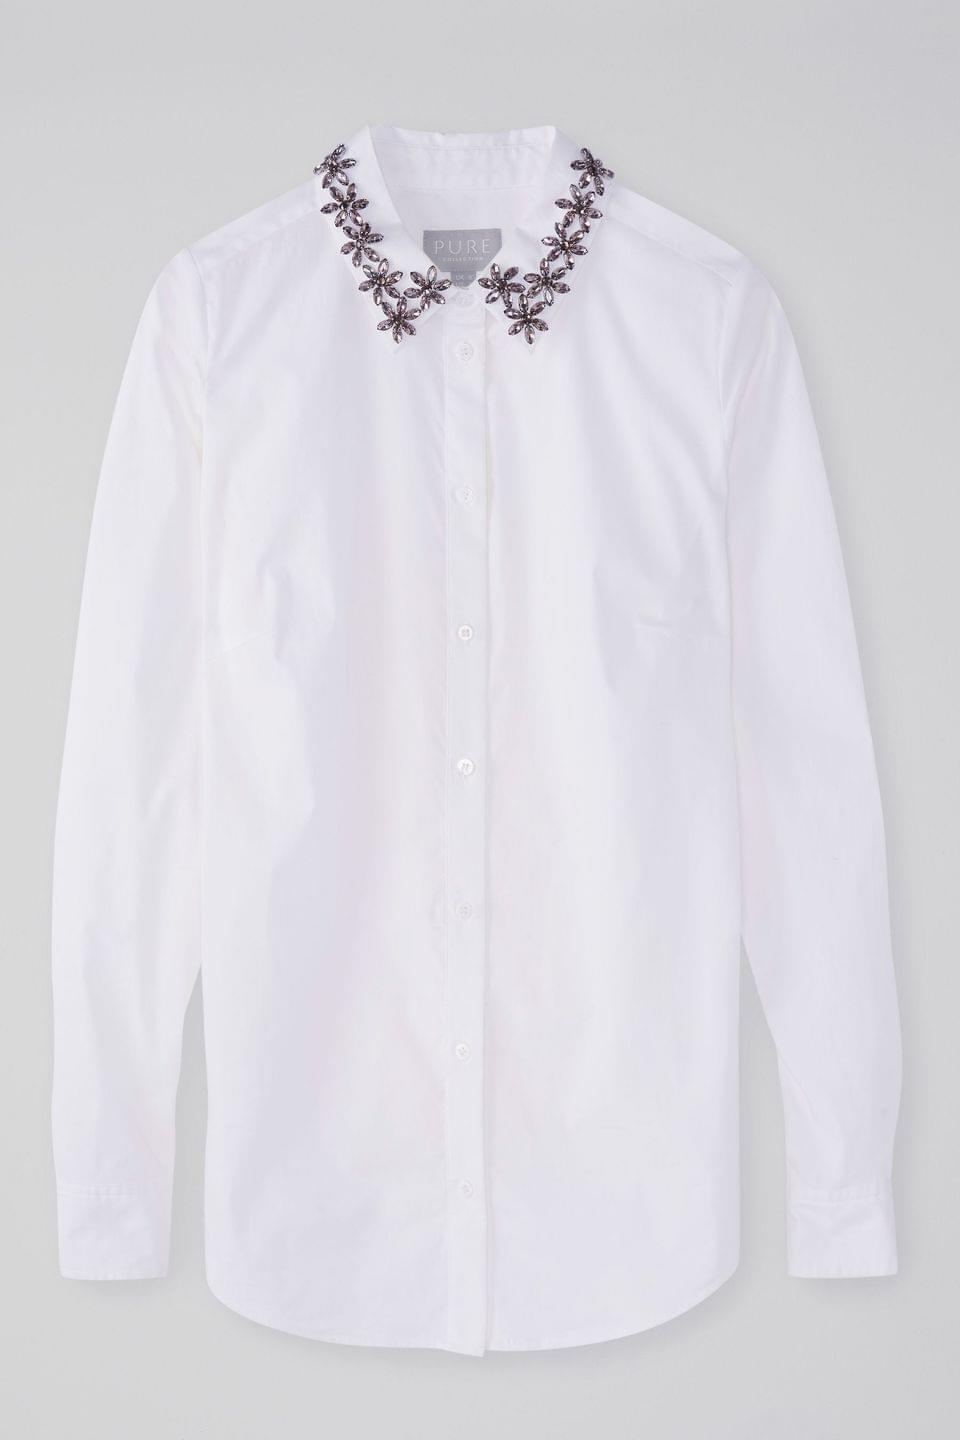 Women's Pure Collection White Cotton Shirt